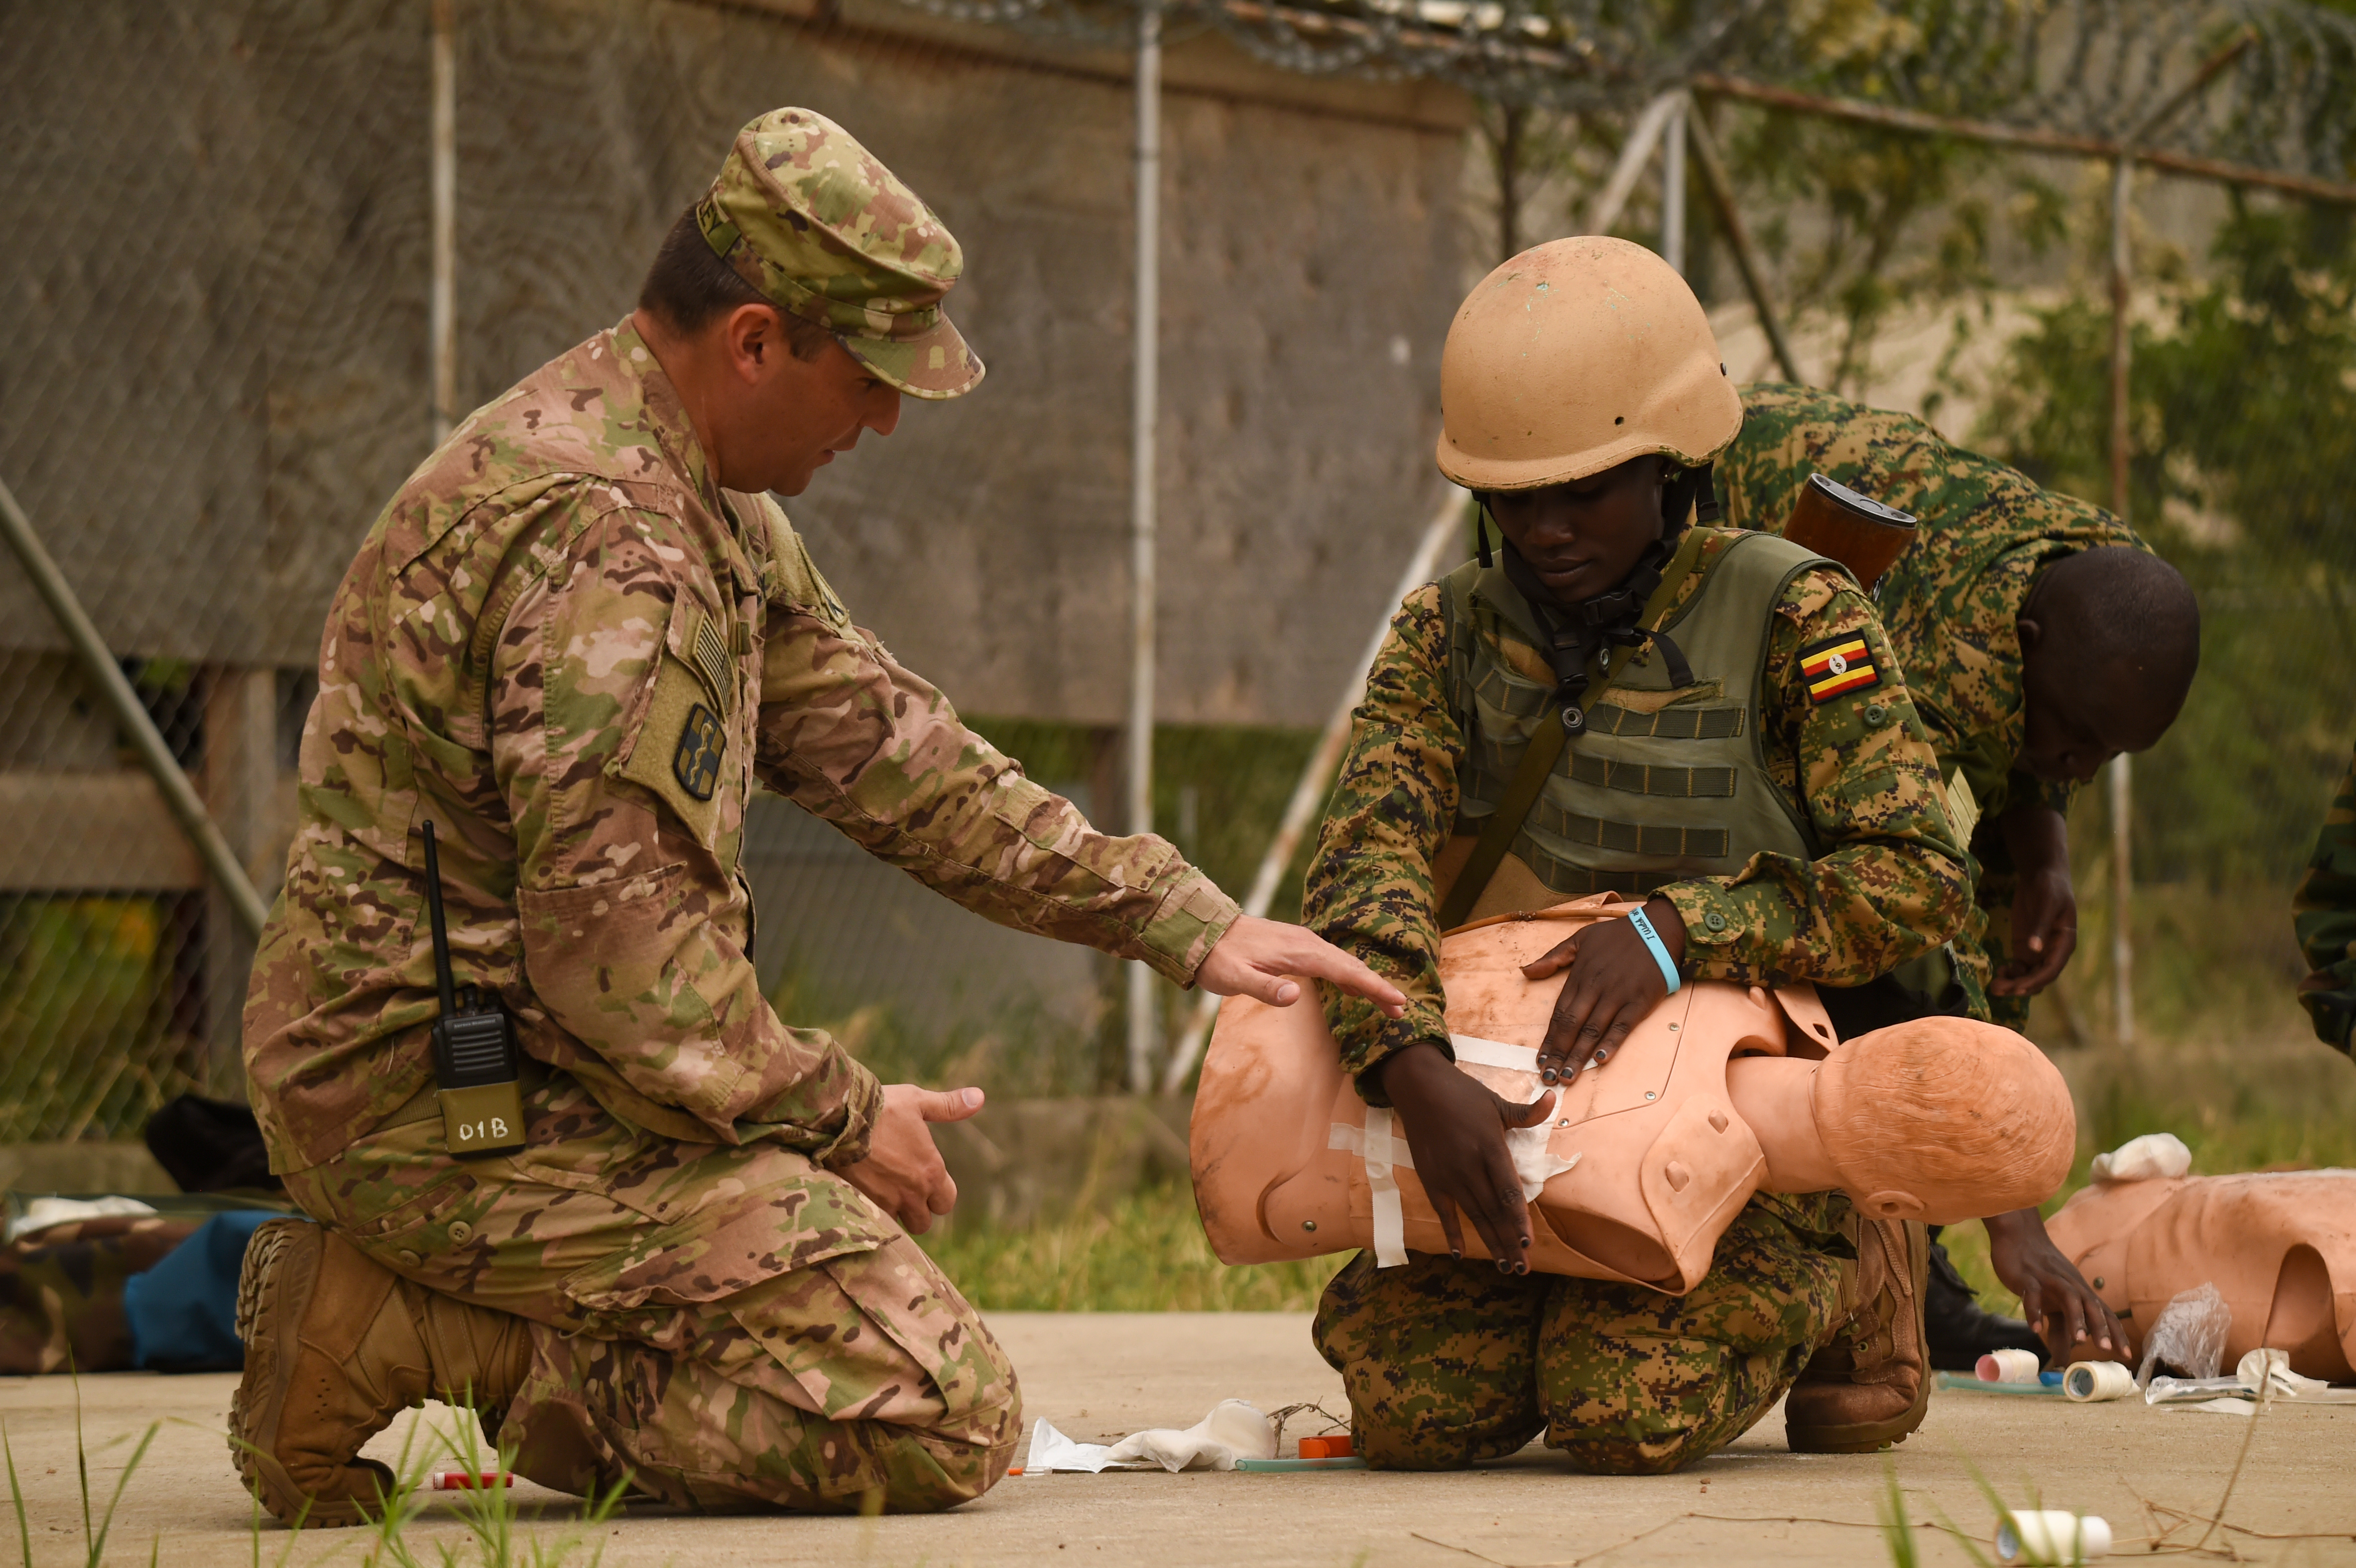 U.S. Army Lt. Col. Sean Dooley, functional specialty team officer in charge with Combined Joint Task Force-Horn of Africa's 418th Civil Affairs Battalion, helps a Uganda People's Defense Force (UPDF) soldier assigned to Ugandan Battle Group 22 (UGABAG 22), triage a chest wound during a medical exercise at Camp Singo, March 3, 2017. The UPDF's UGABAG 22 tested the skills they culminated earlier in their pre-deployment training such as nine-line medical evacuation, combat lifesaving techniques, and providing cover from an enemy during extractions. (U.S. Air National Guard photo by Staff Sgt. Penny Snoozy)